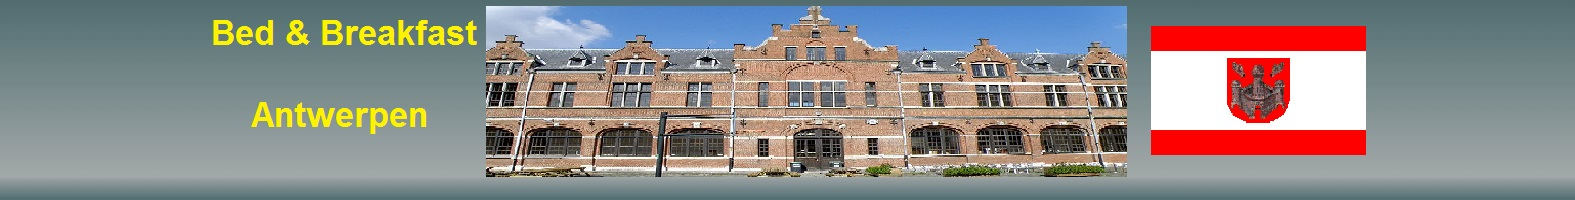 wrapper bed & breakfast antwerpen